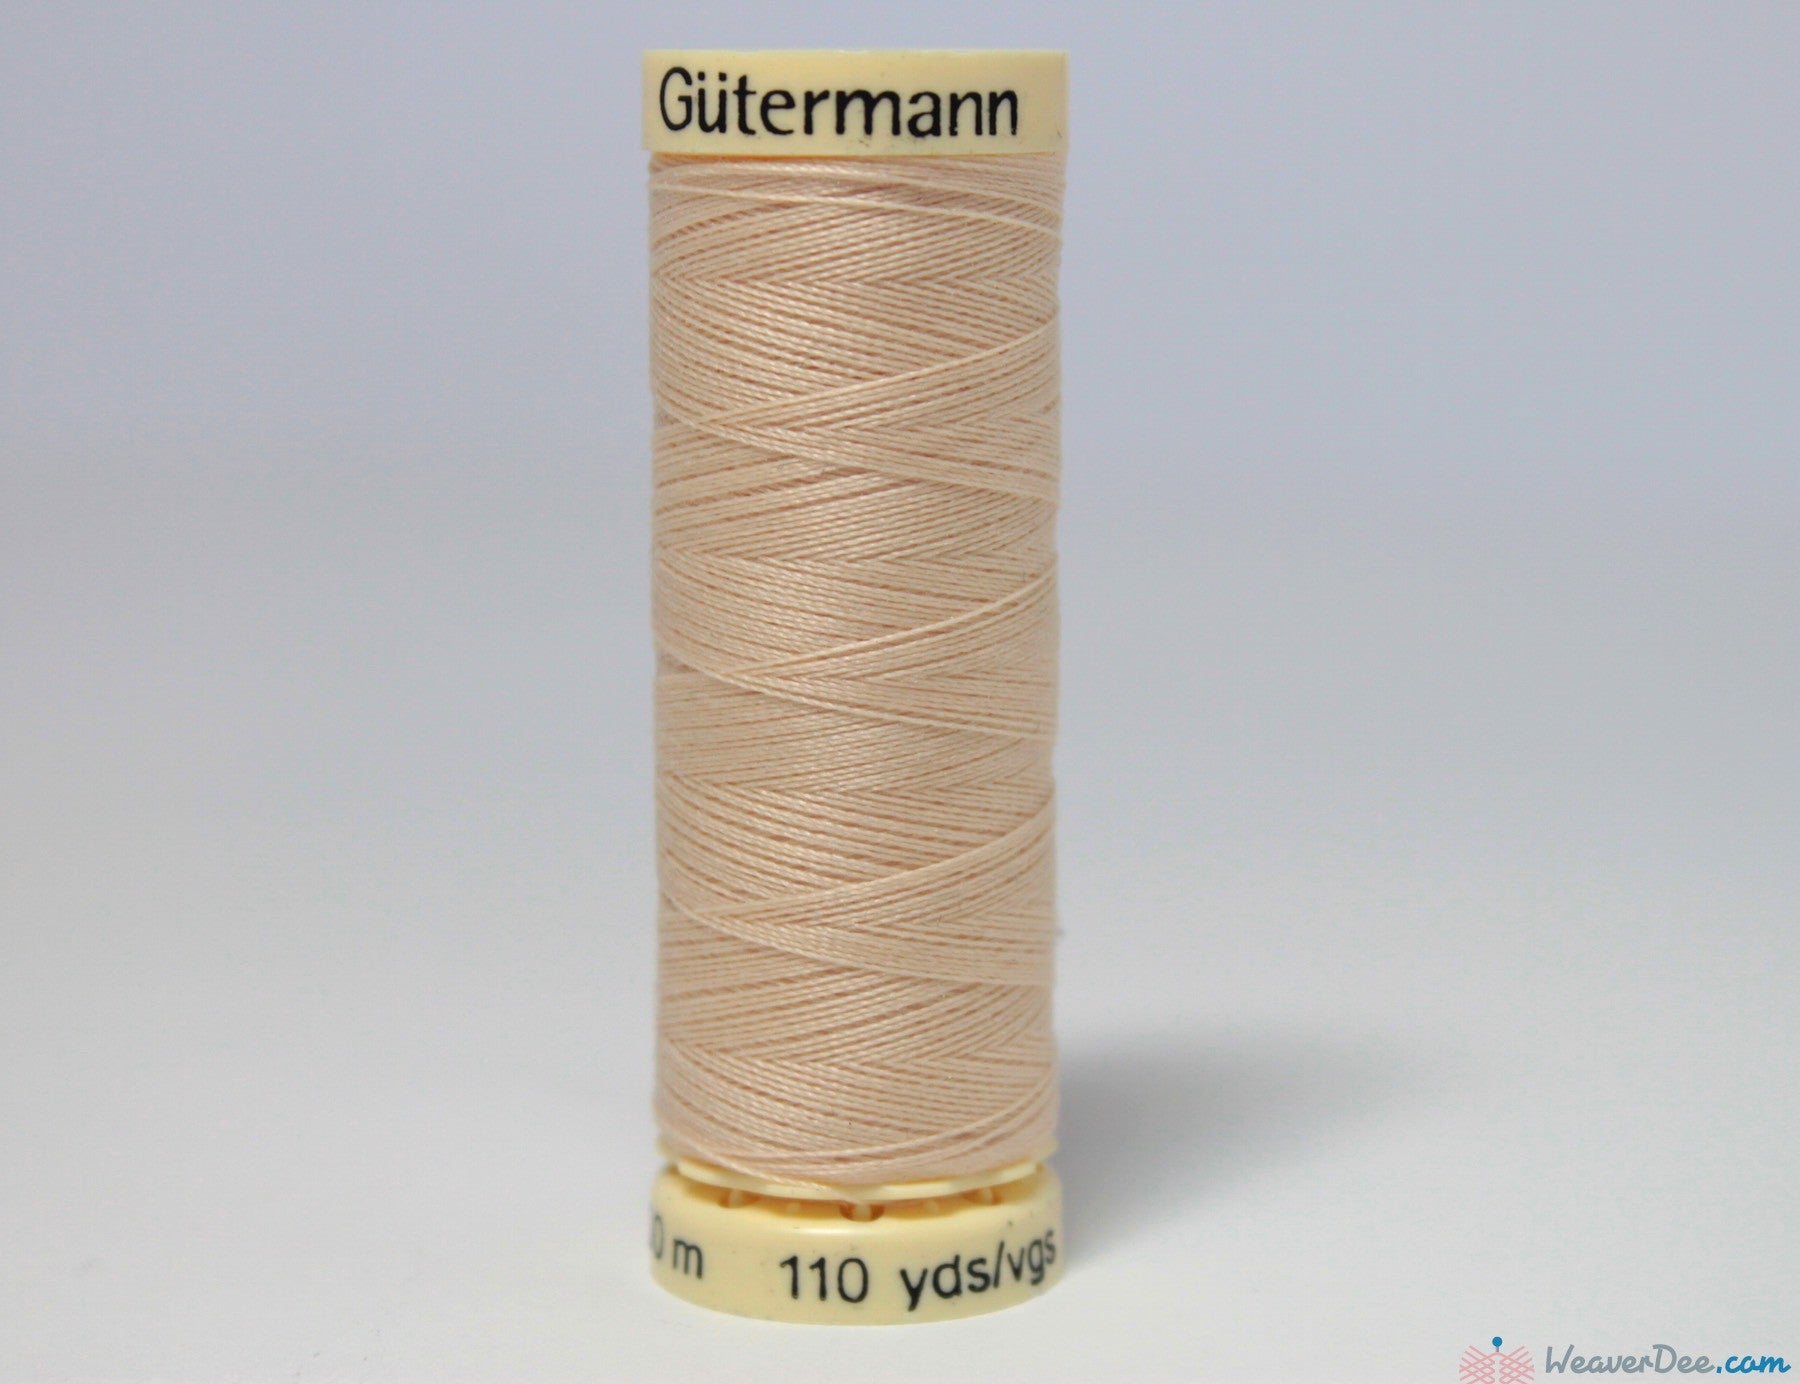 Gütermann - Sew-All Polyester Sewing Thread [5 Nude Pink] - WeaverDee.com Sewing & Crafts - 1